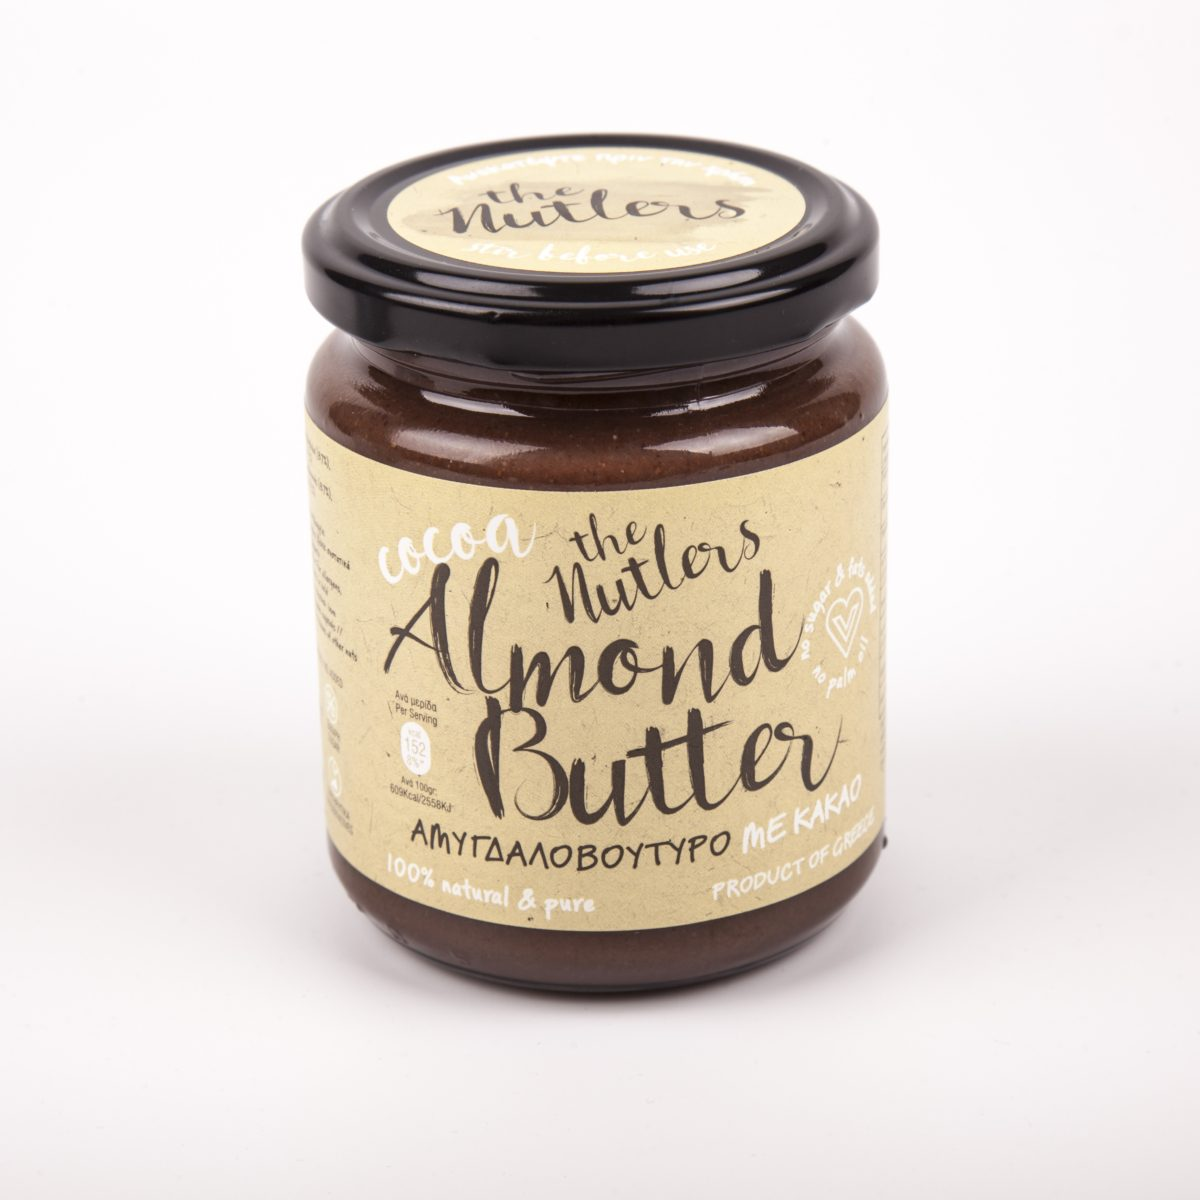 Cocoa Almond Butter